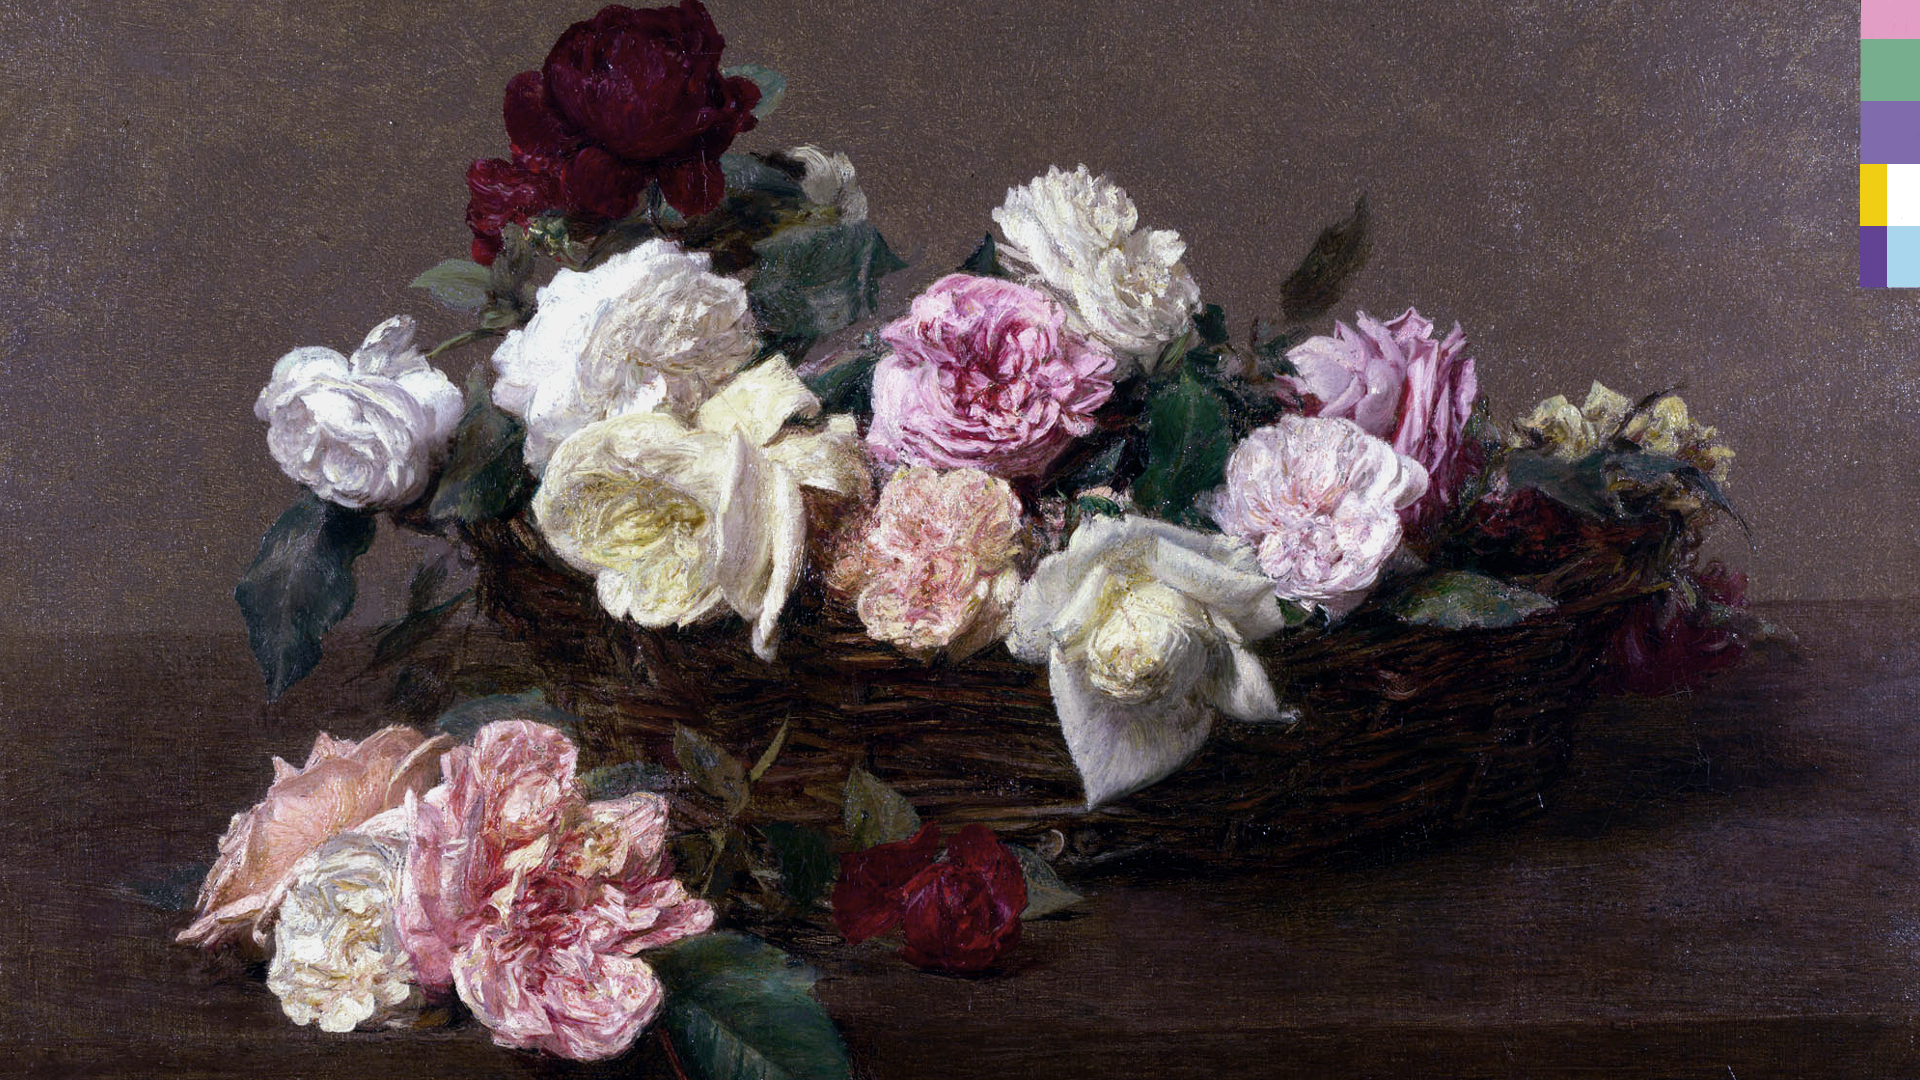 Power Corruption Lies Wallpaper 'power Corruption Lies' Was